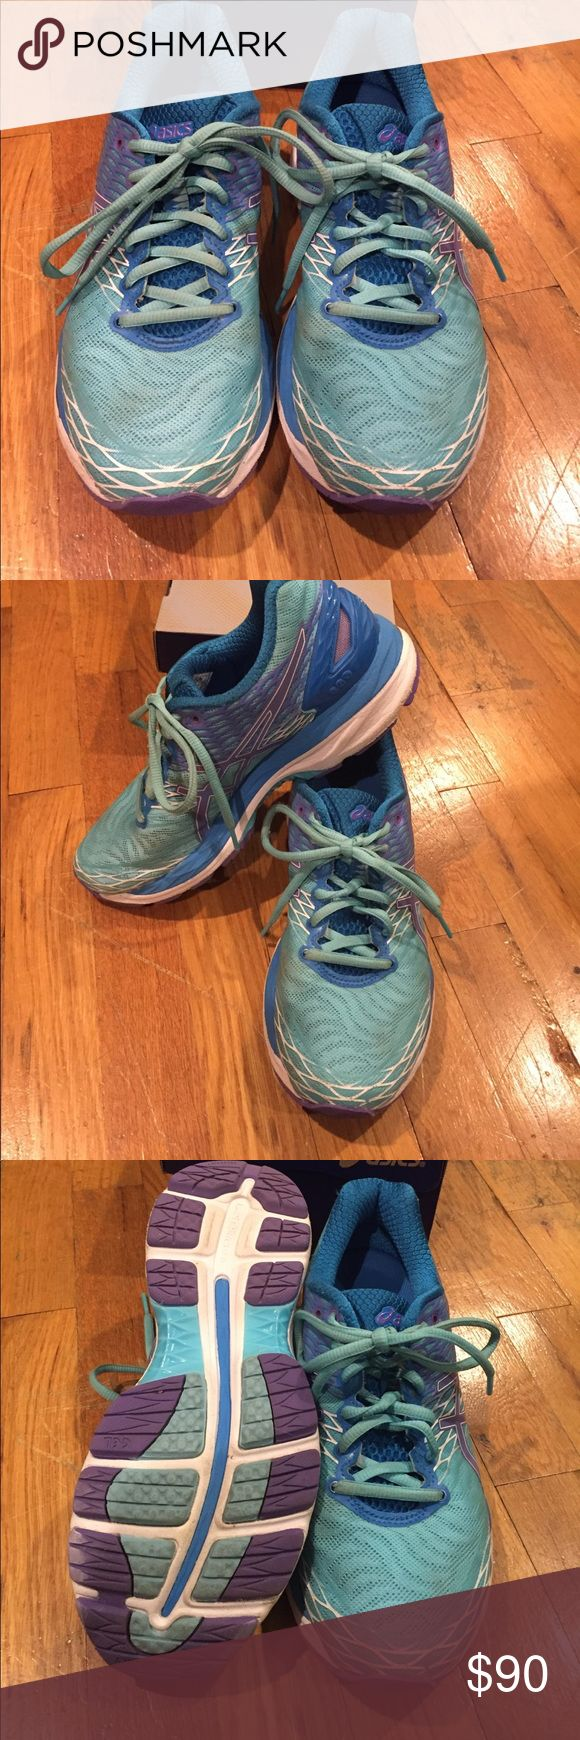 ASICS Gel Nimbus 18 Woman's size 8.5 Up for sale is a pair of ASICS Gel Nimbus 18 size 8.5. They are in excellent condition and come in original box. Asics Shoes Sneakers